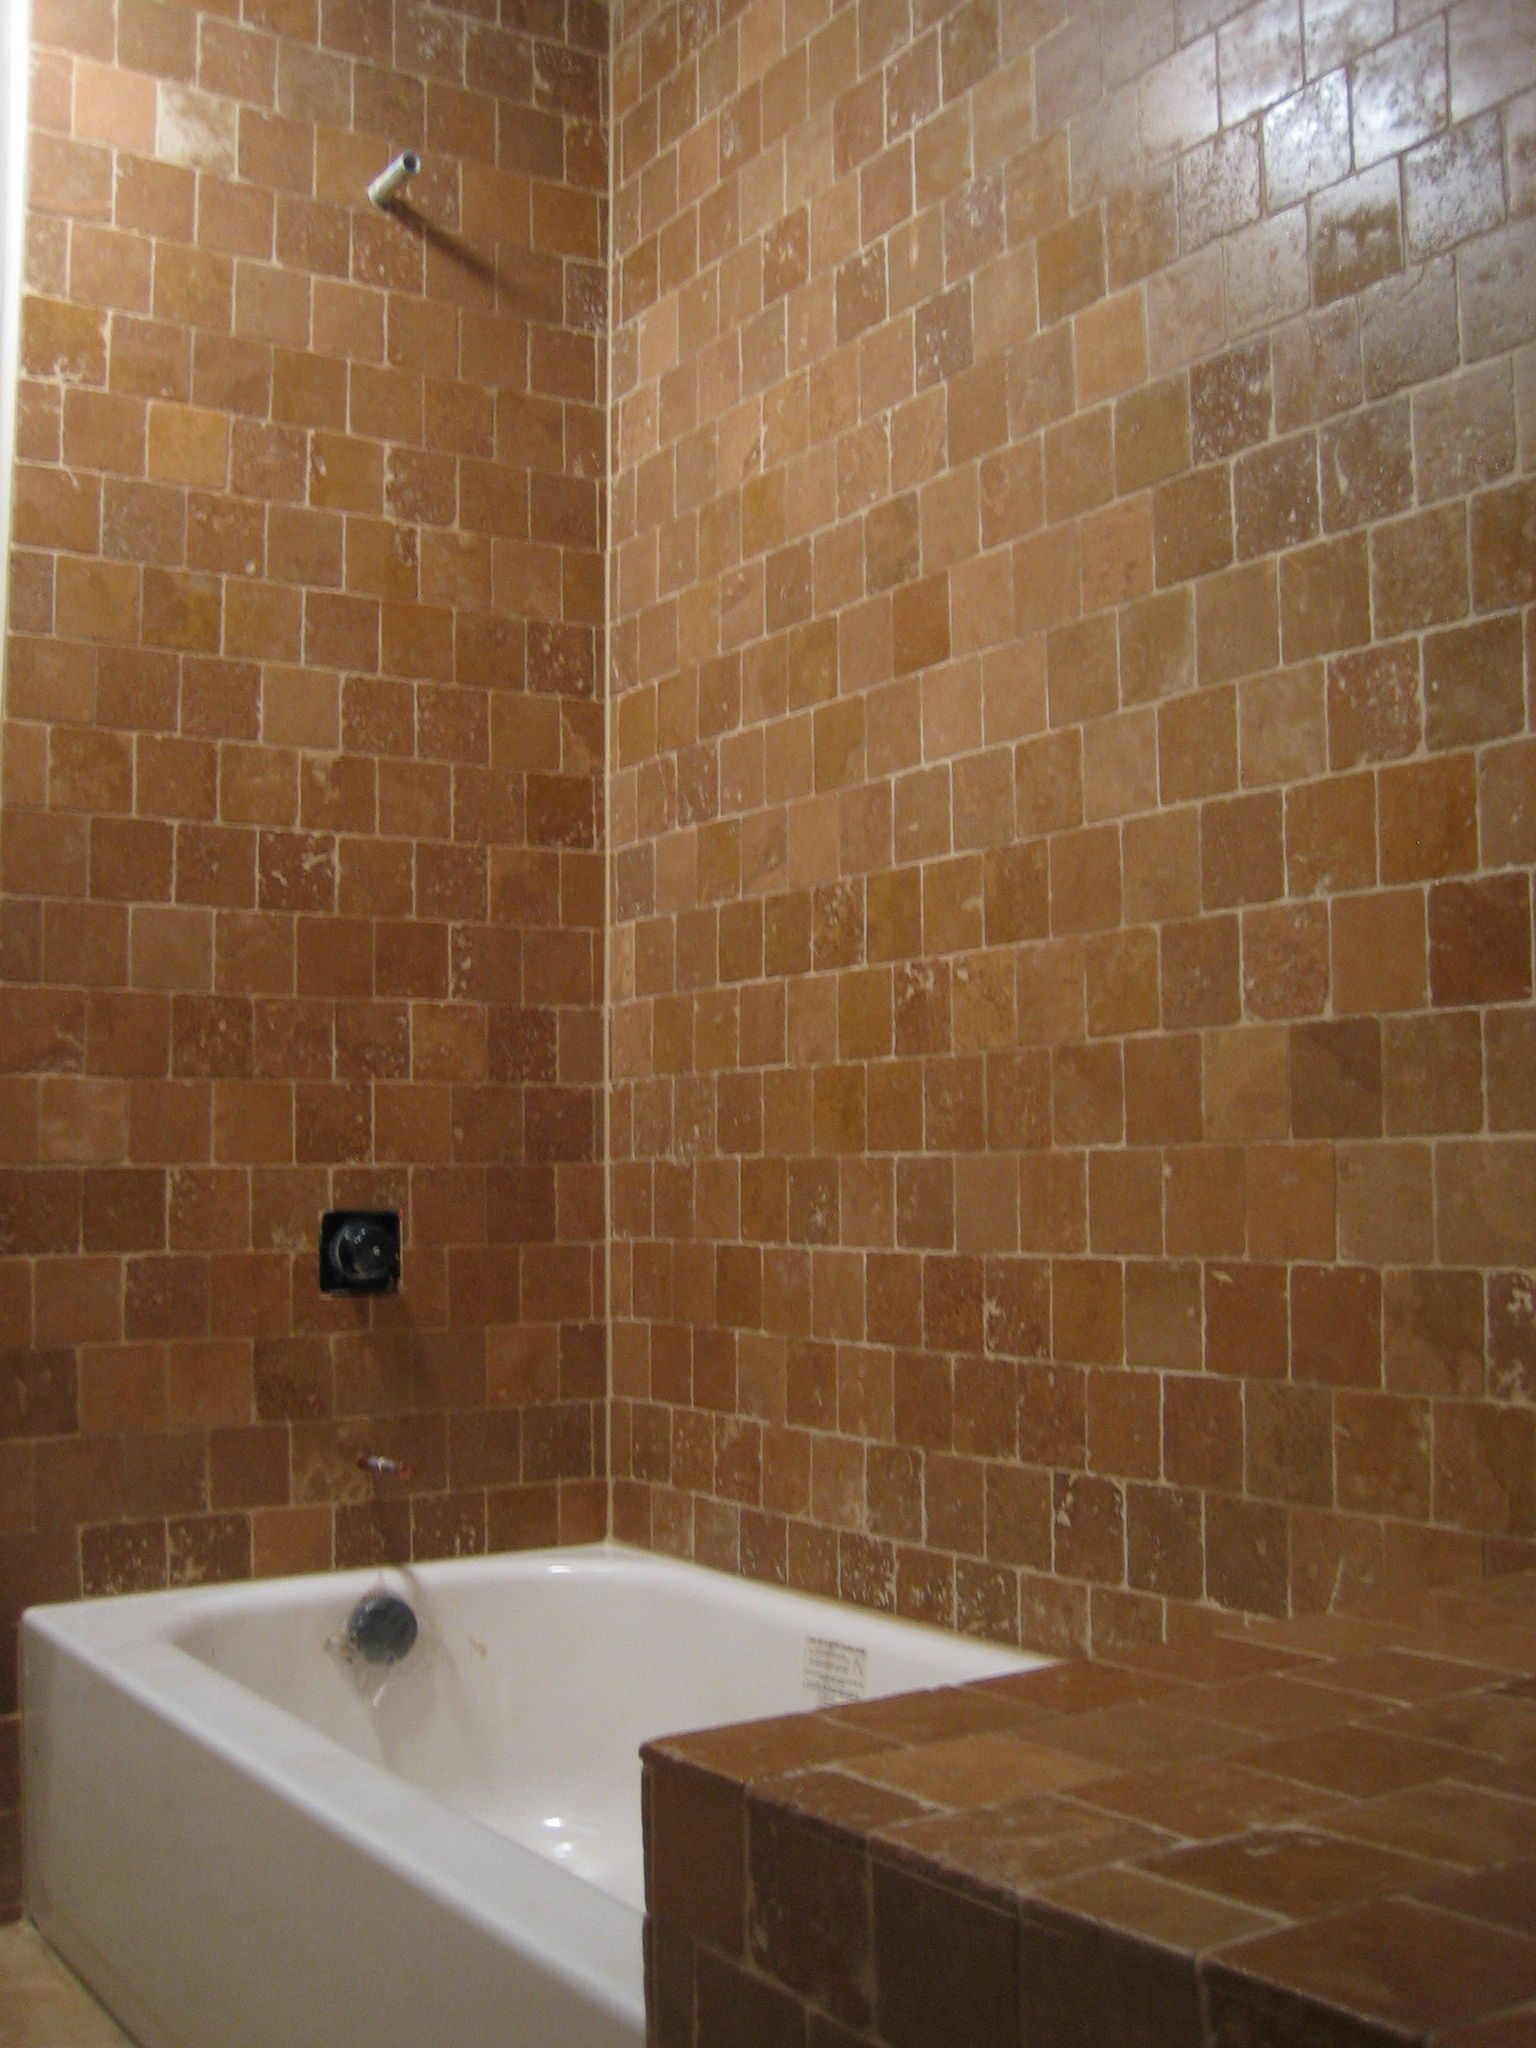 Tiled tub surround pictures bathtub surrounds ma bathtub tile surrounds bathrooms - Tile shower surround ideas ...